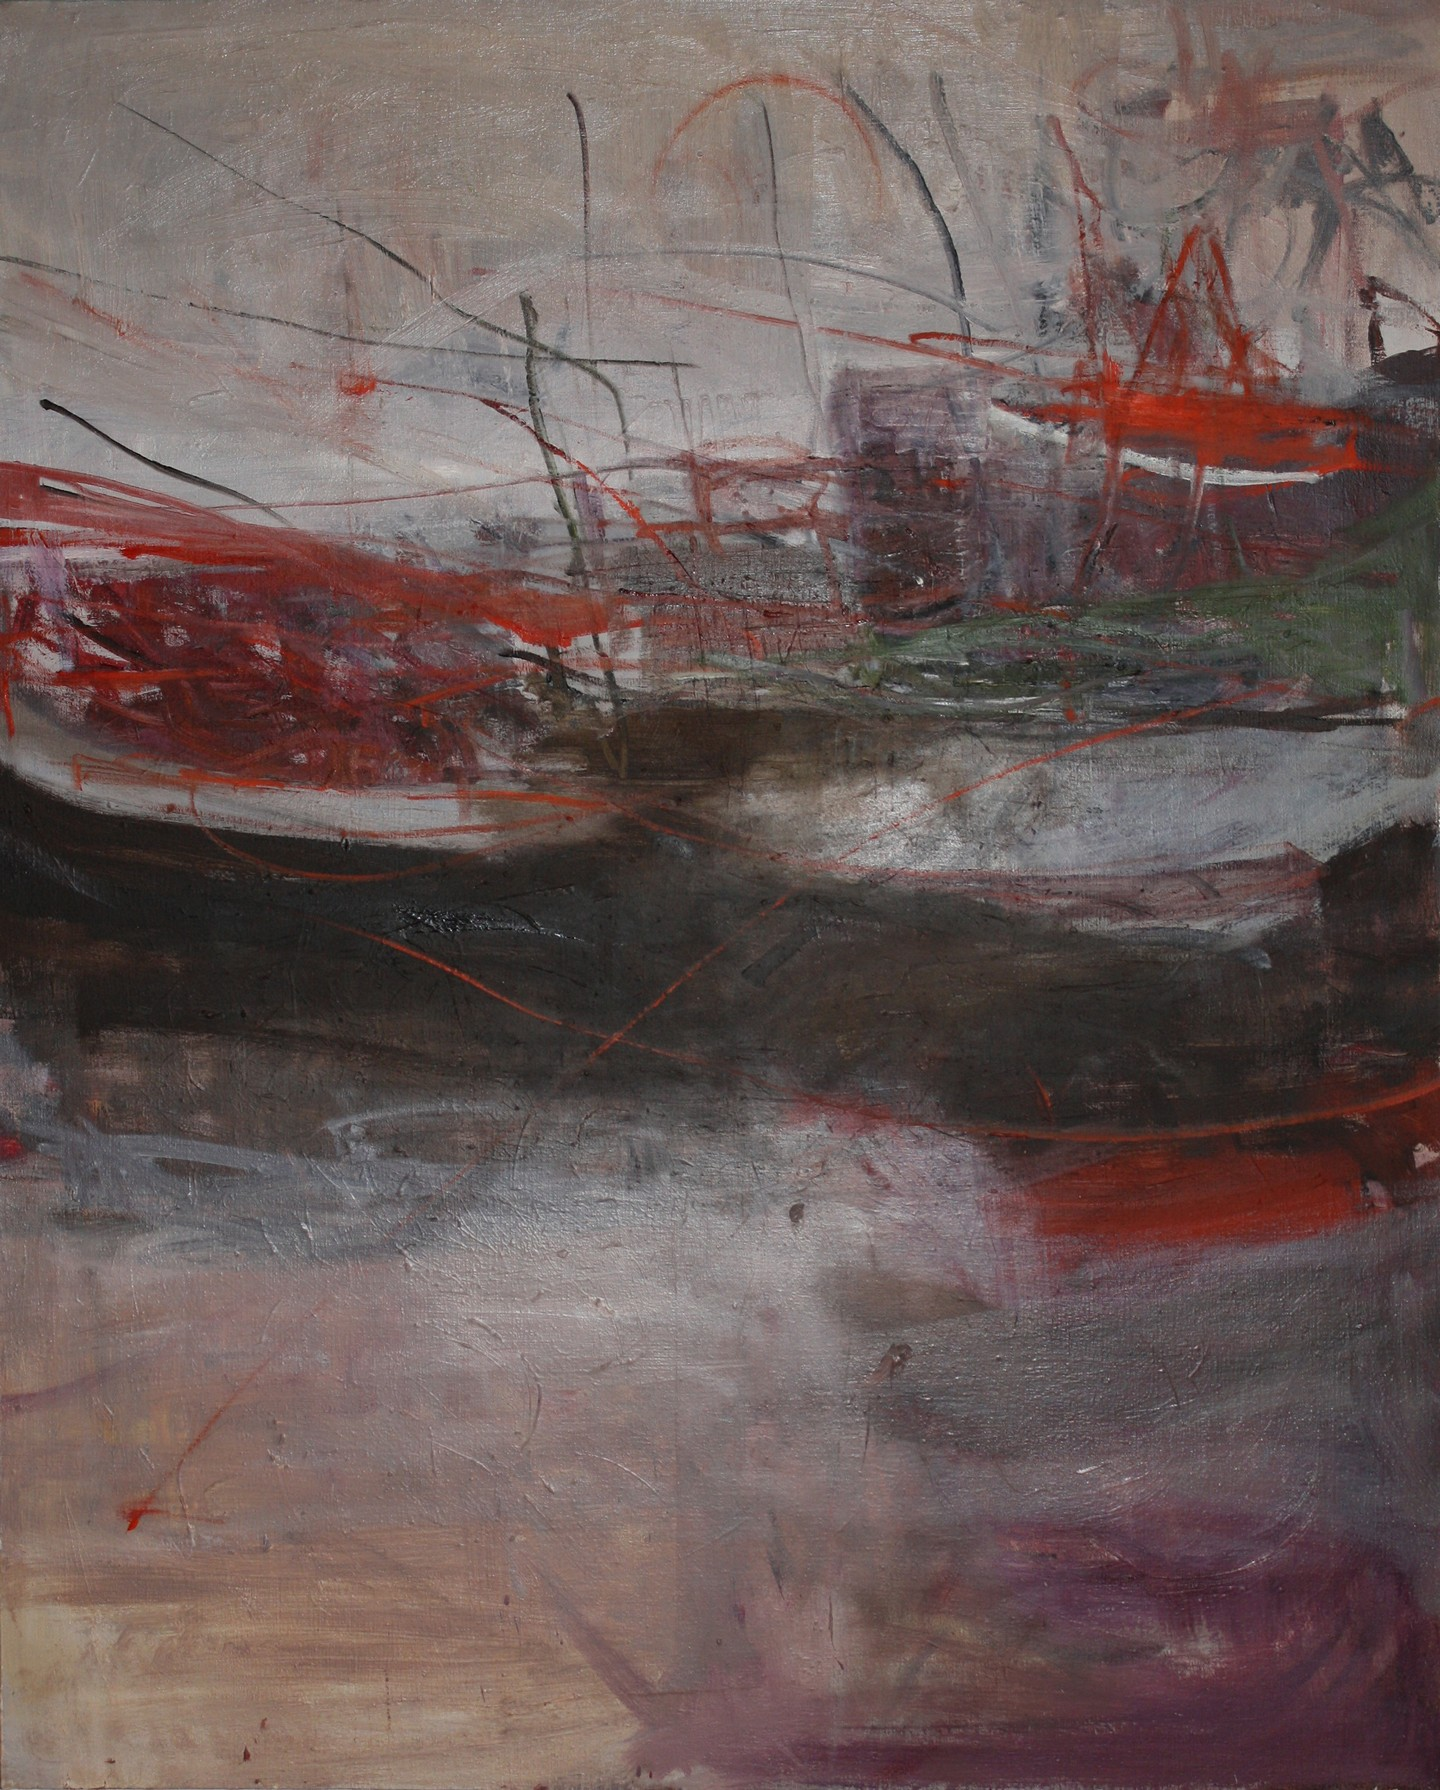 Painting_24_Elizabeth Diaz_Primitive Field of Vision_45 x 55 inches_Oil on Canvas_2012.jpg